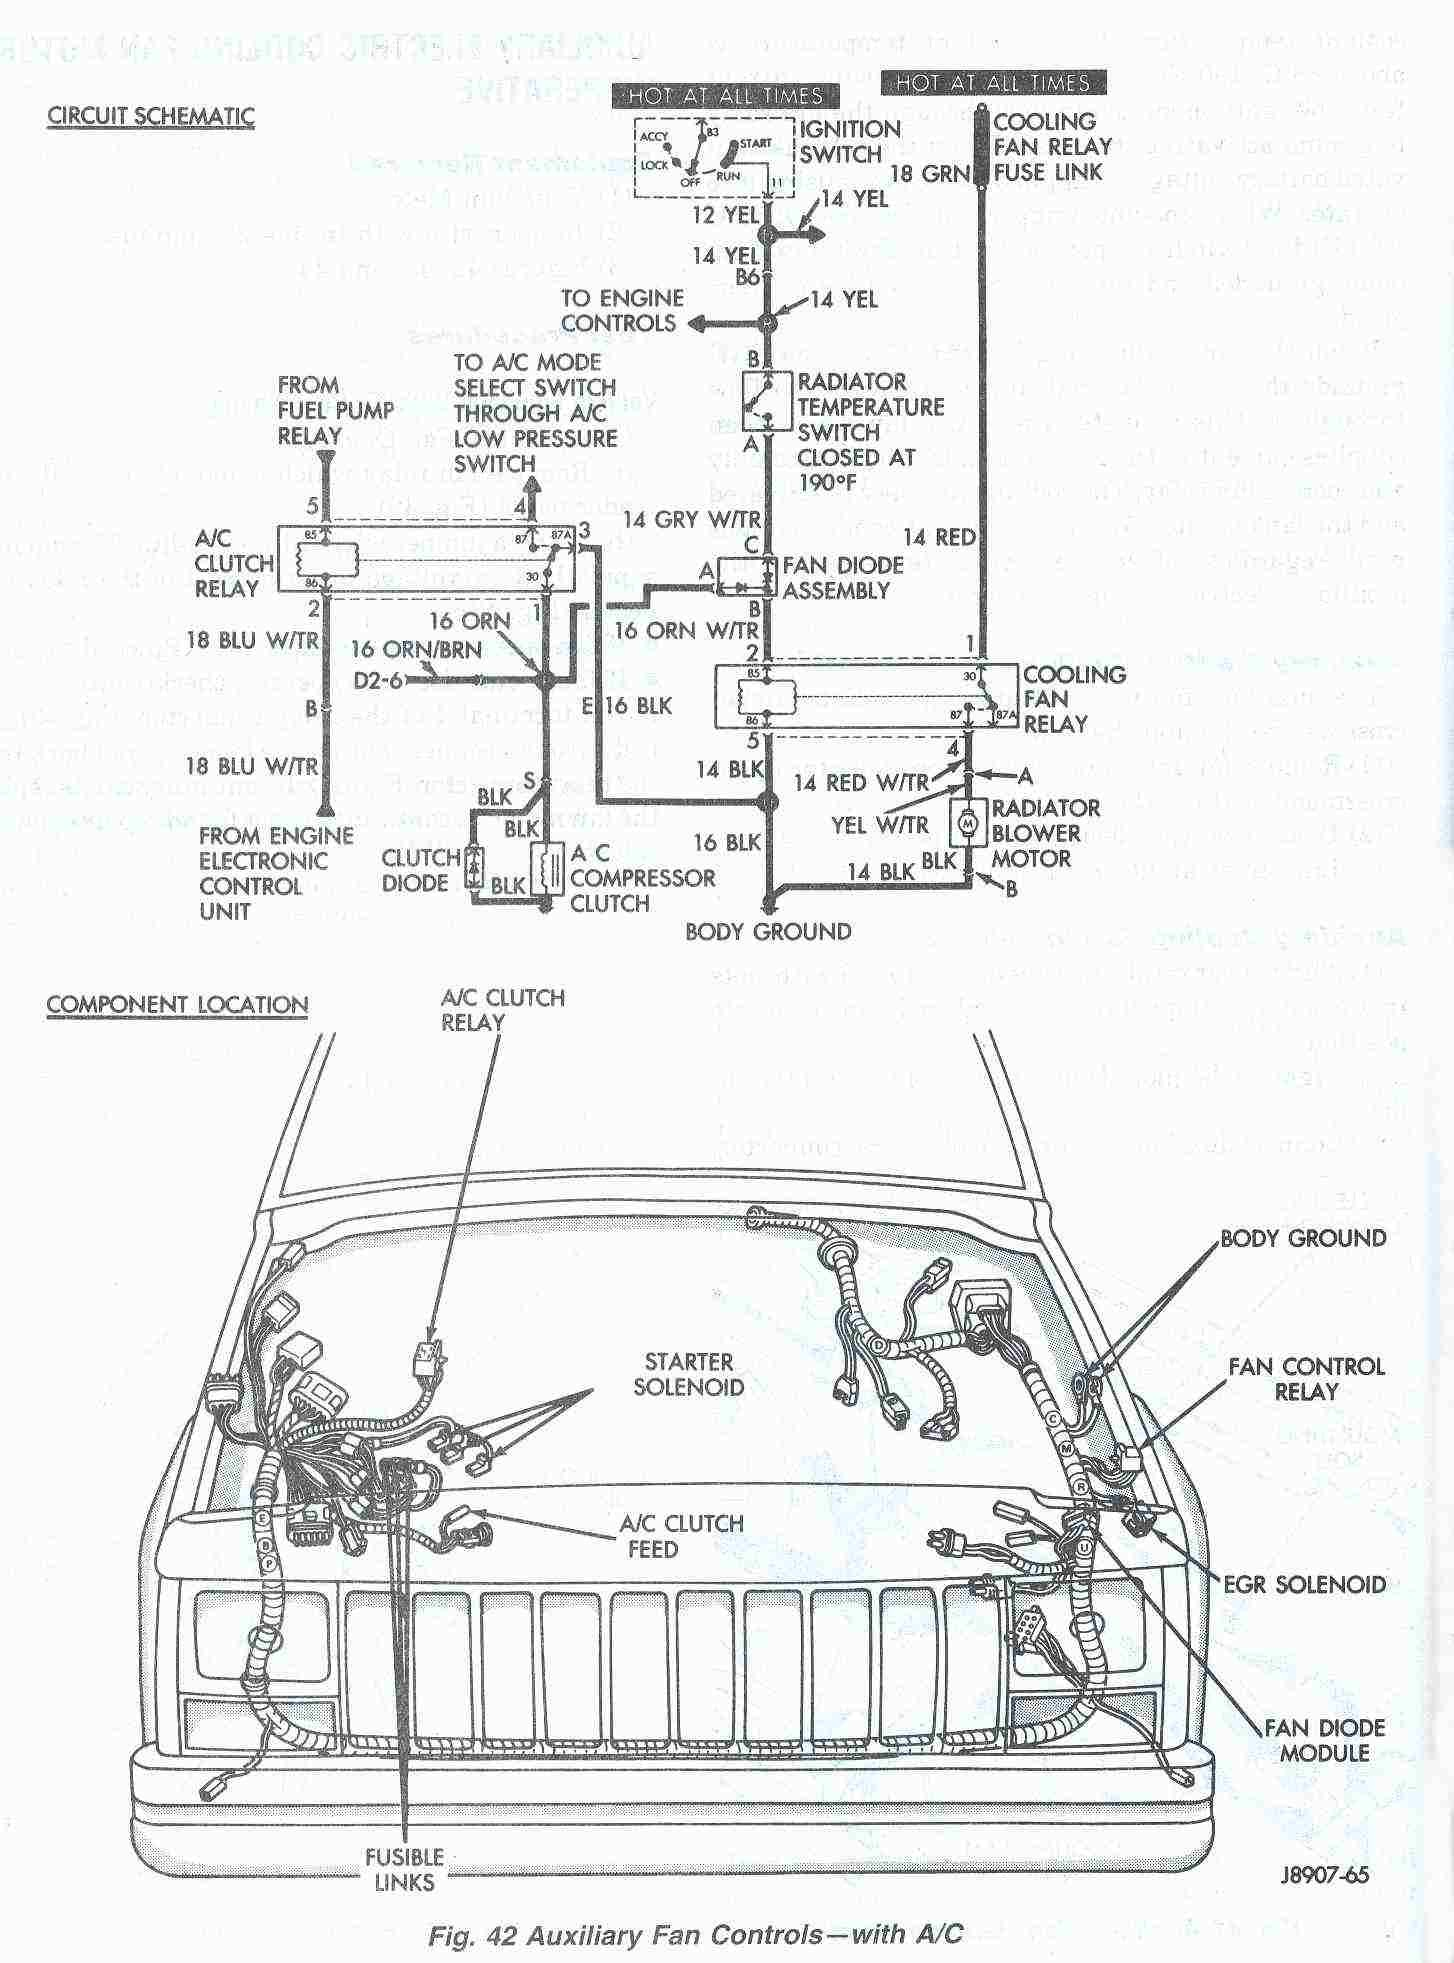 Transmission Cooling System Diagram 4r100 Valve Body Wiring Related Post